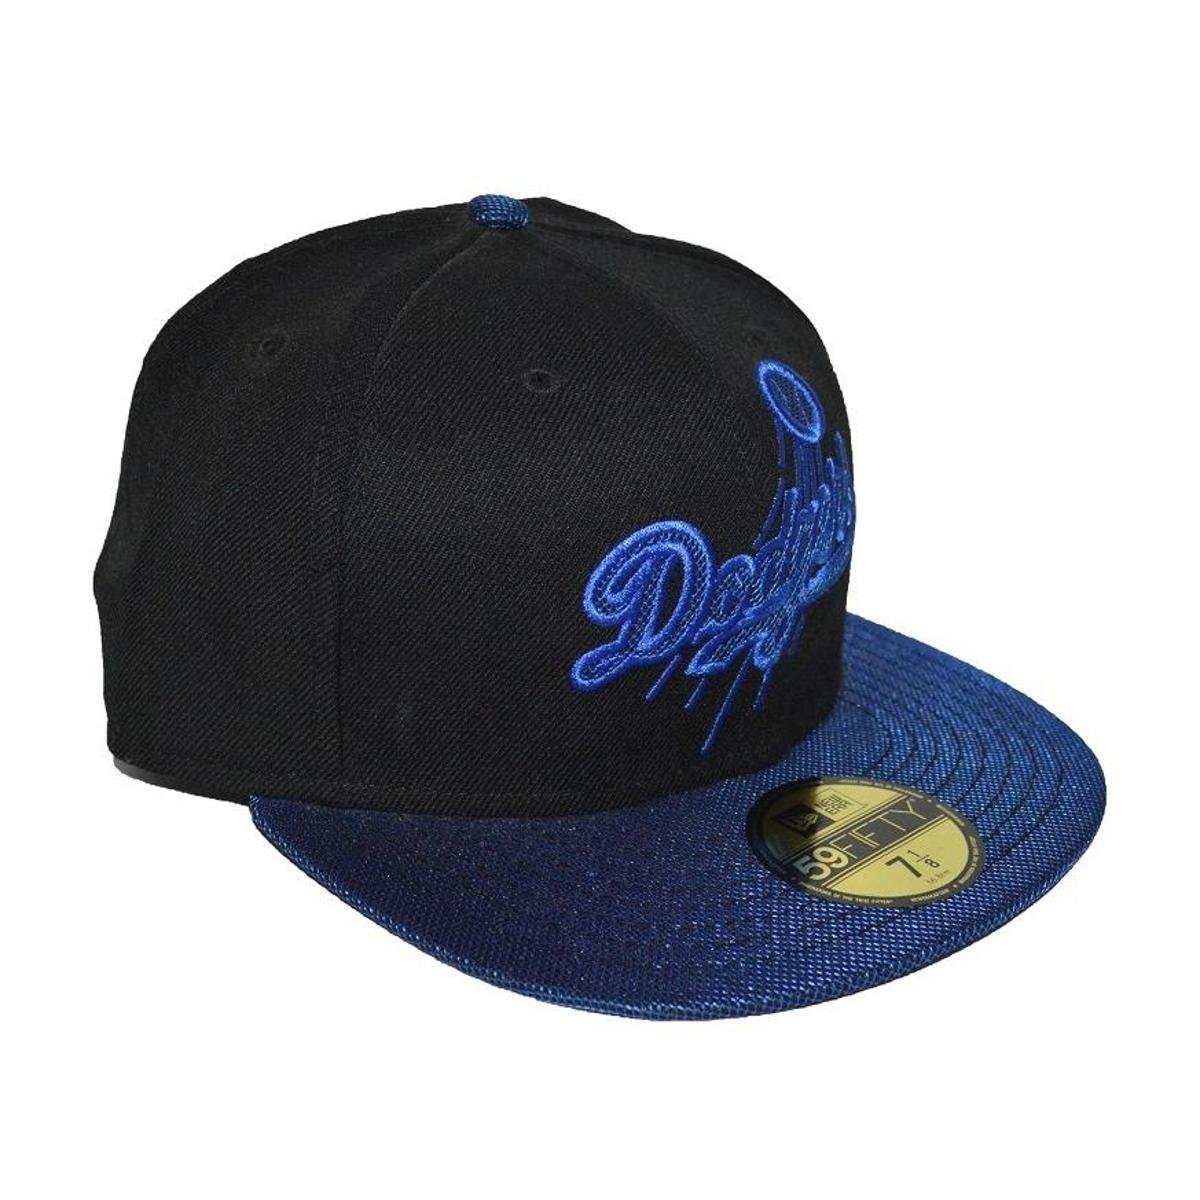 Boné New Era Aba Reta 59Fifty Mlb Los Angeles Dodg - Compre Agora ... 850d7de2a13